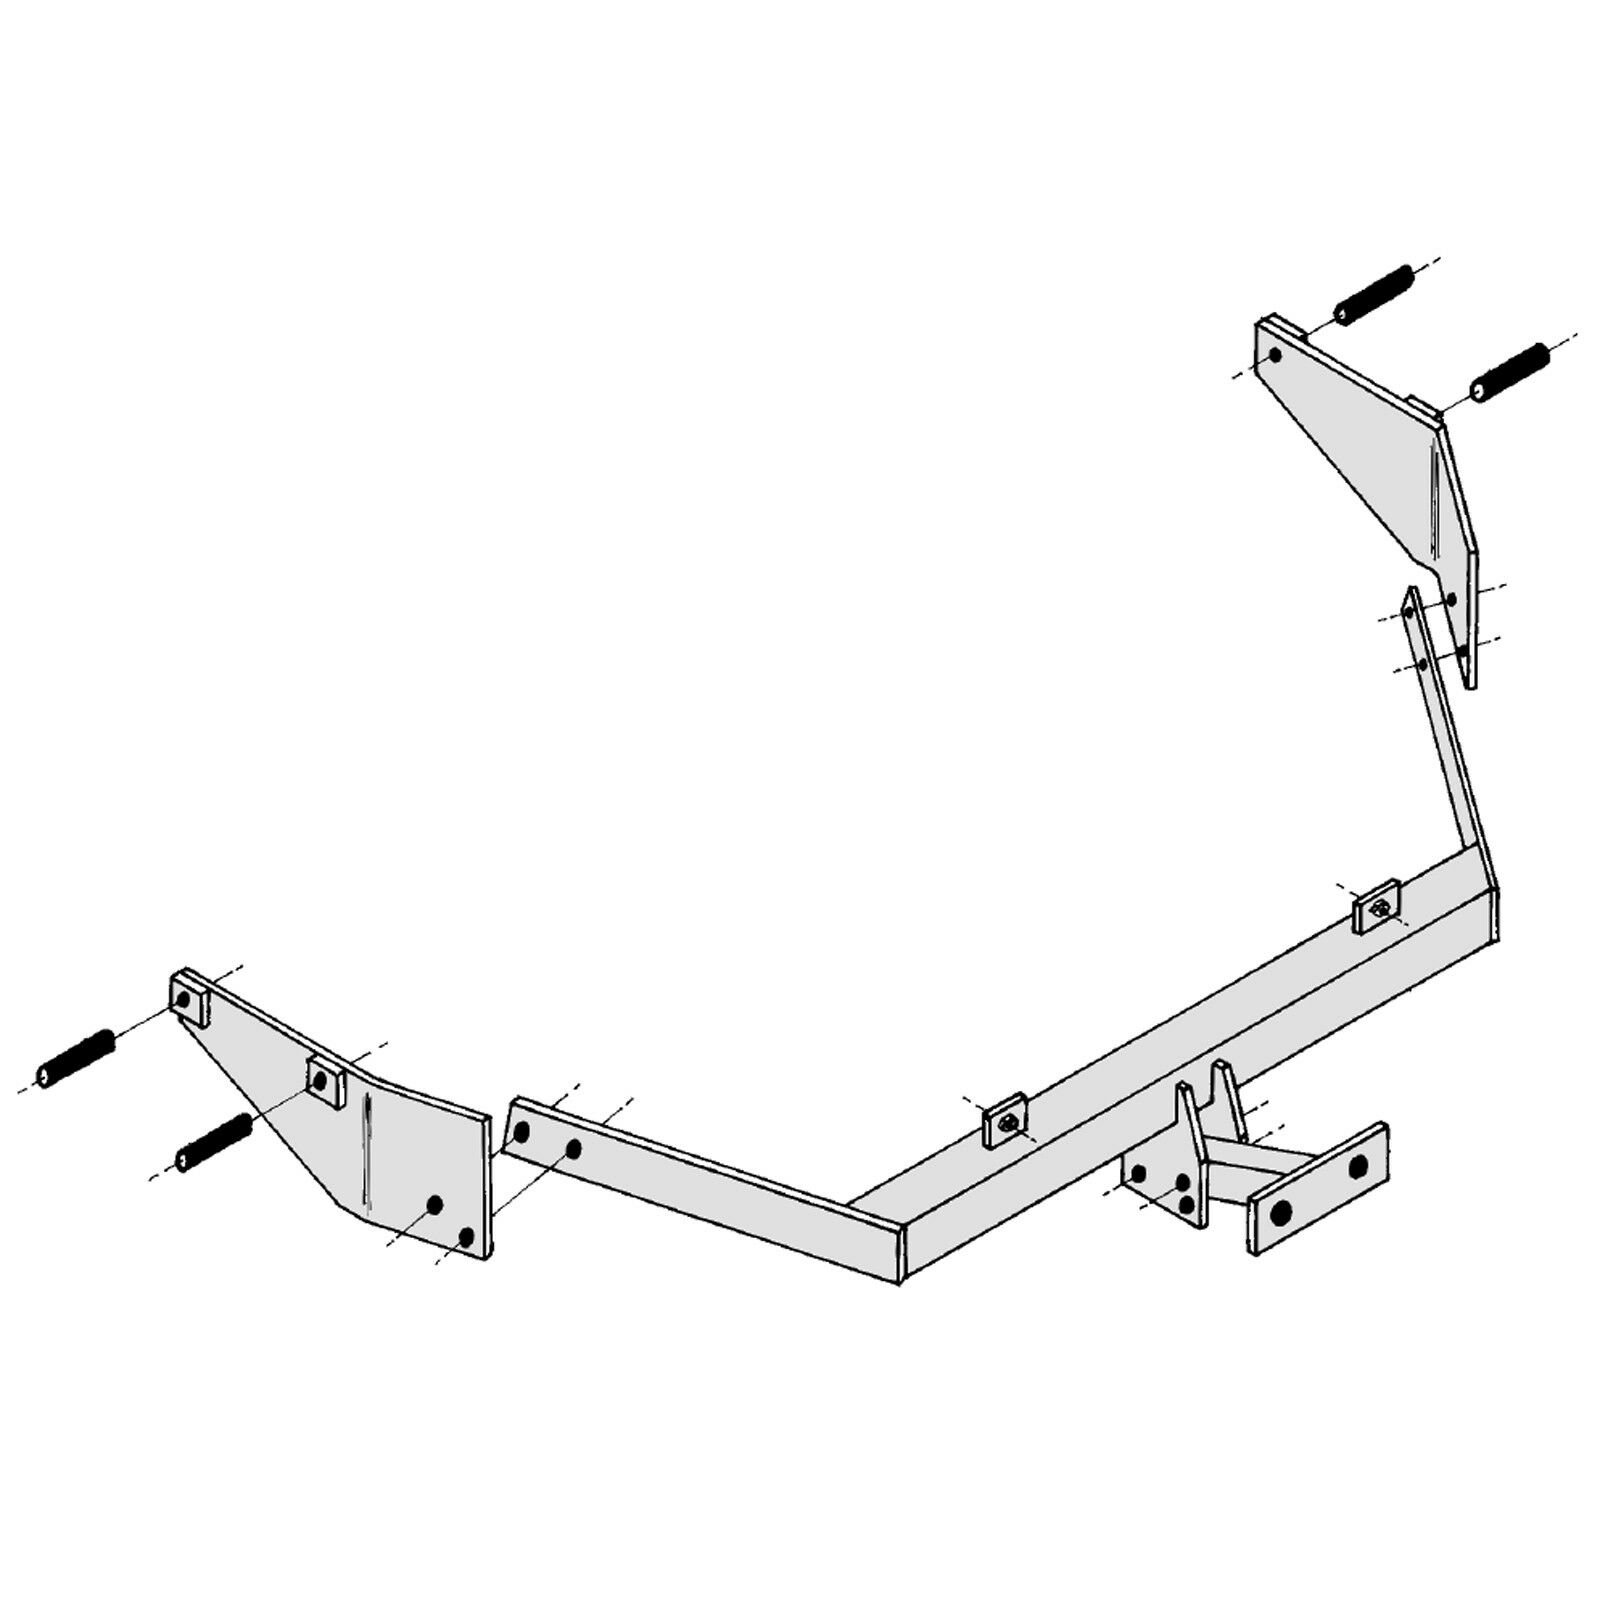 details about towbar for peugeot partner combi 1996 2008 flange tow bar Dual Fuel Wiring Diagram